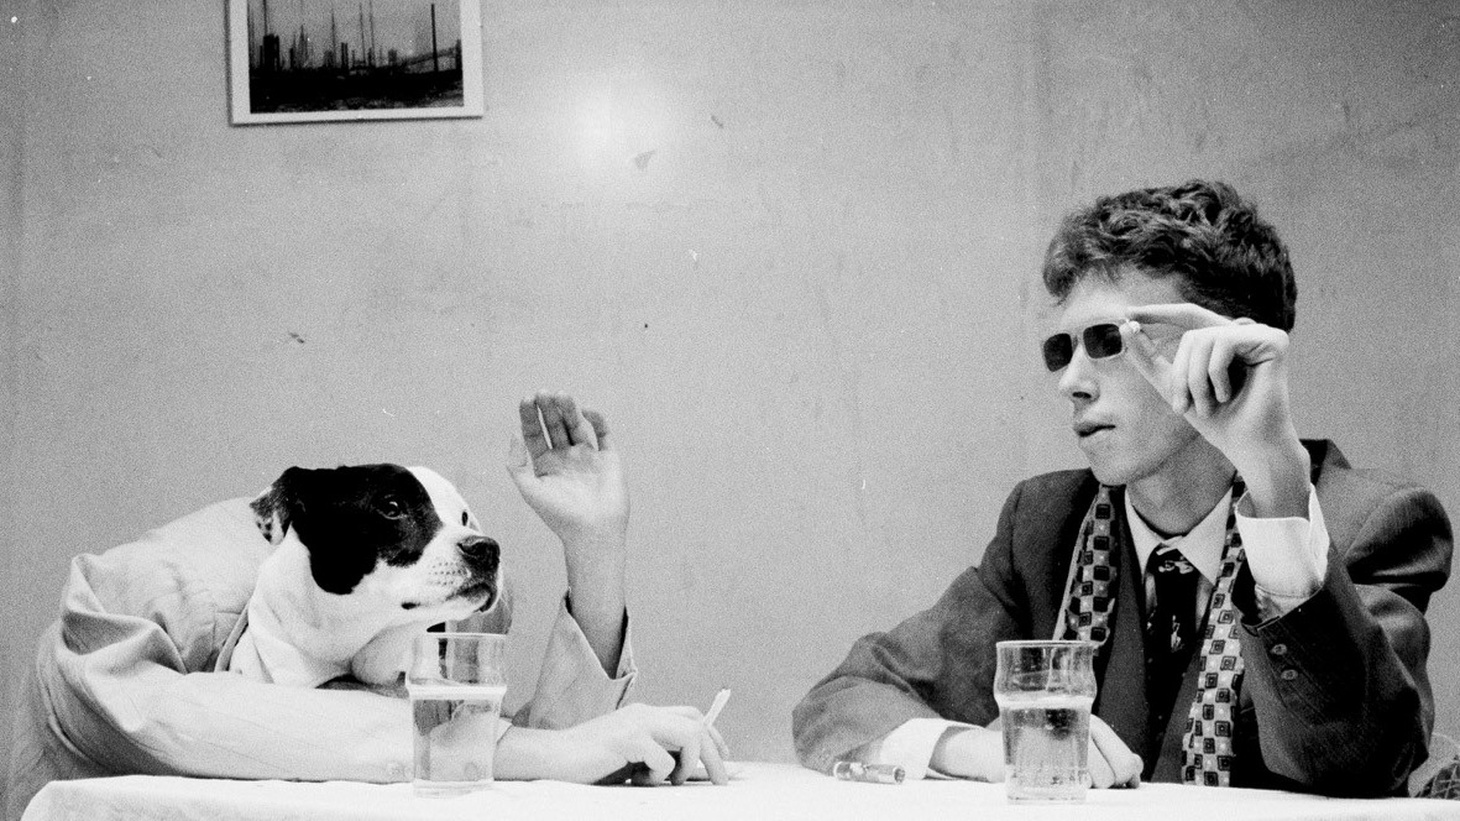 King Krule, aka Archy Marshall, has been the voice of a disenchanted generation since the release of his debut album at age 19. Four years later, the punk poet's voice is stronger than ever on The Ooz.